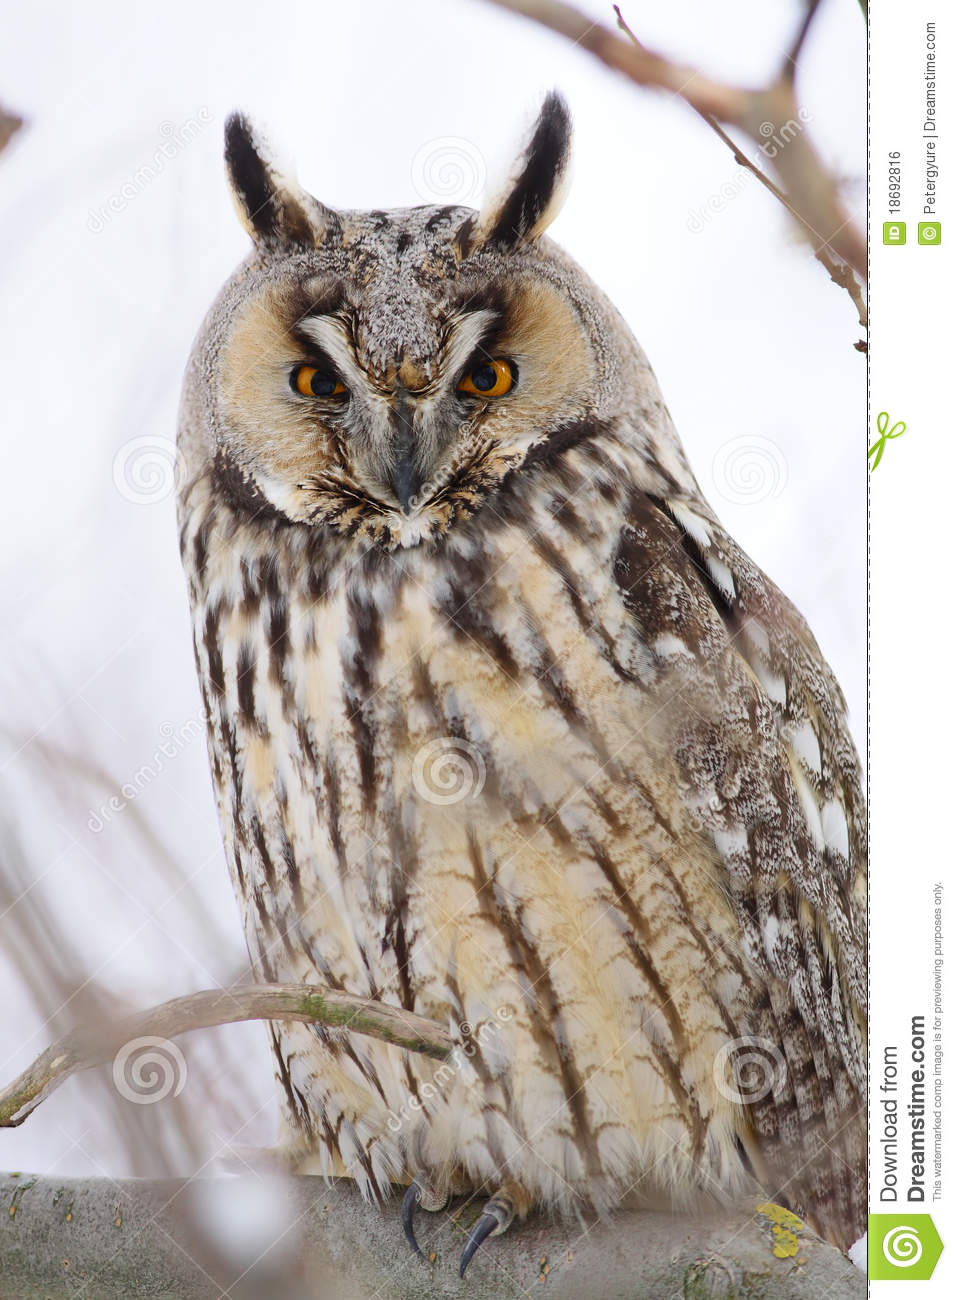 Long-eared Owl Royalty Free Stock Image - Image: 18692816